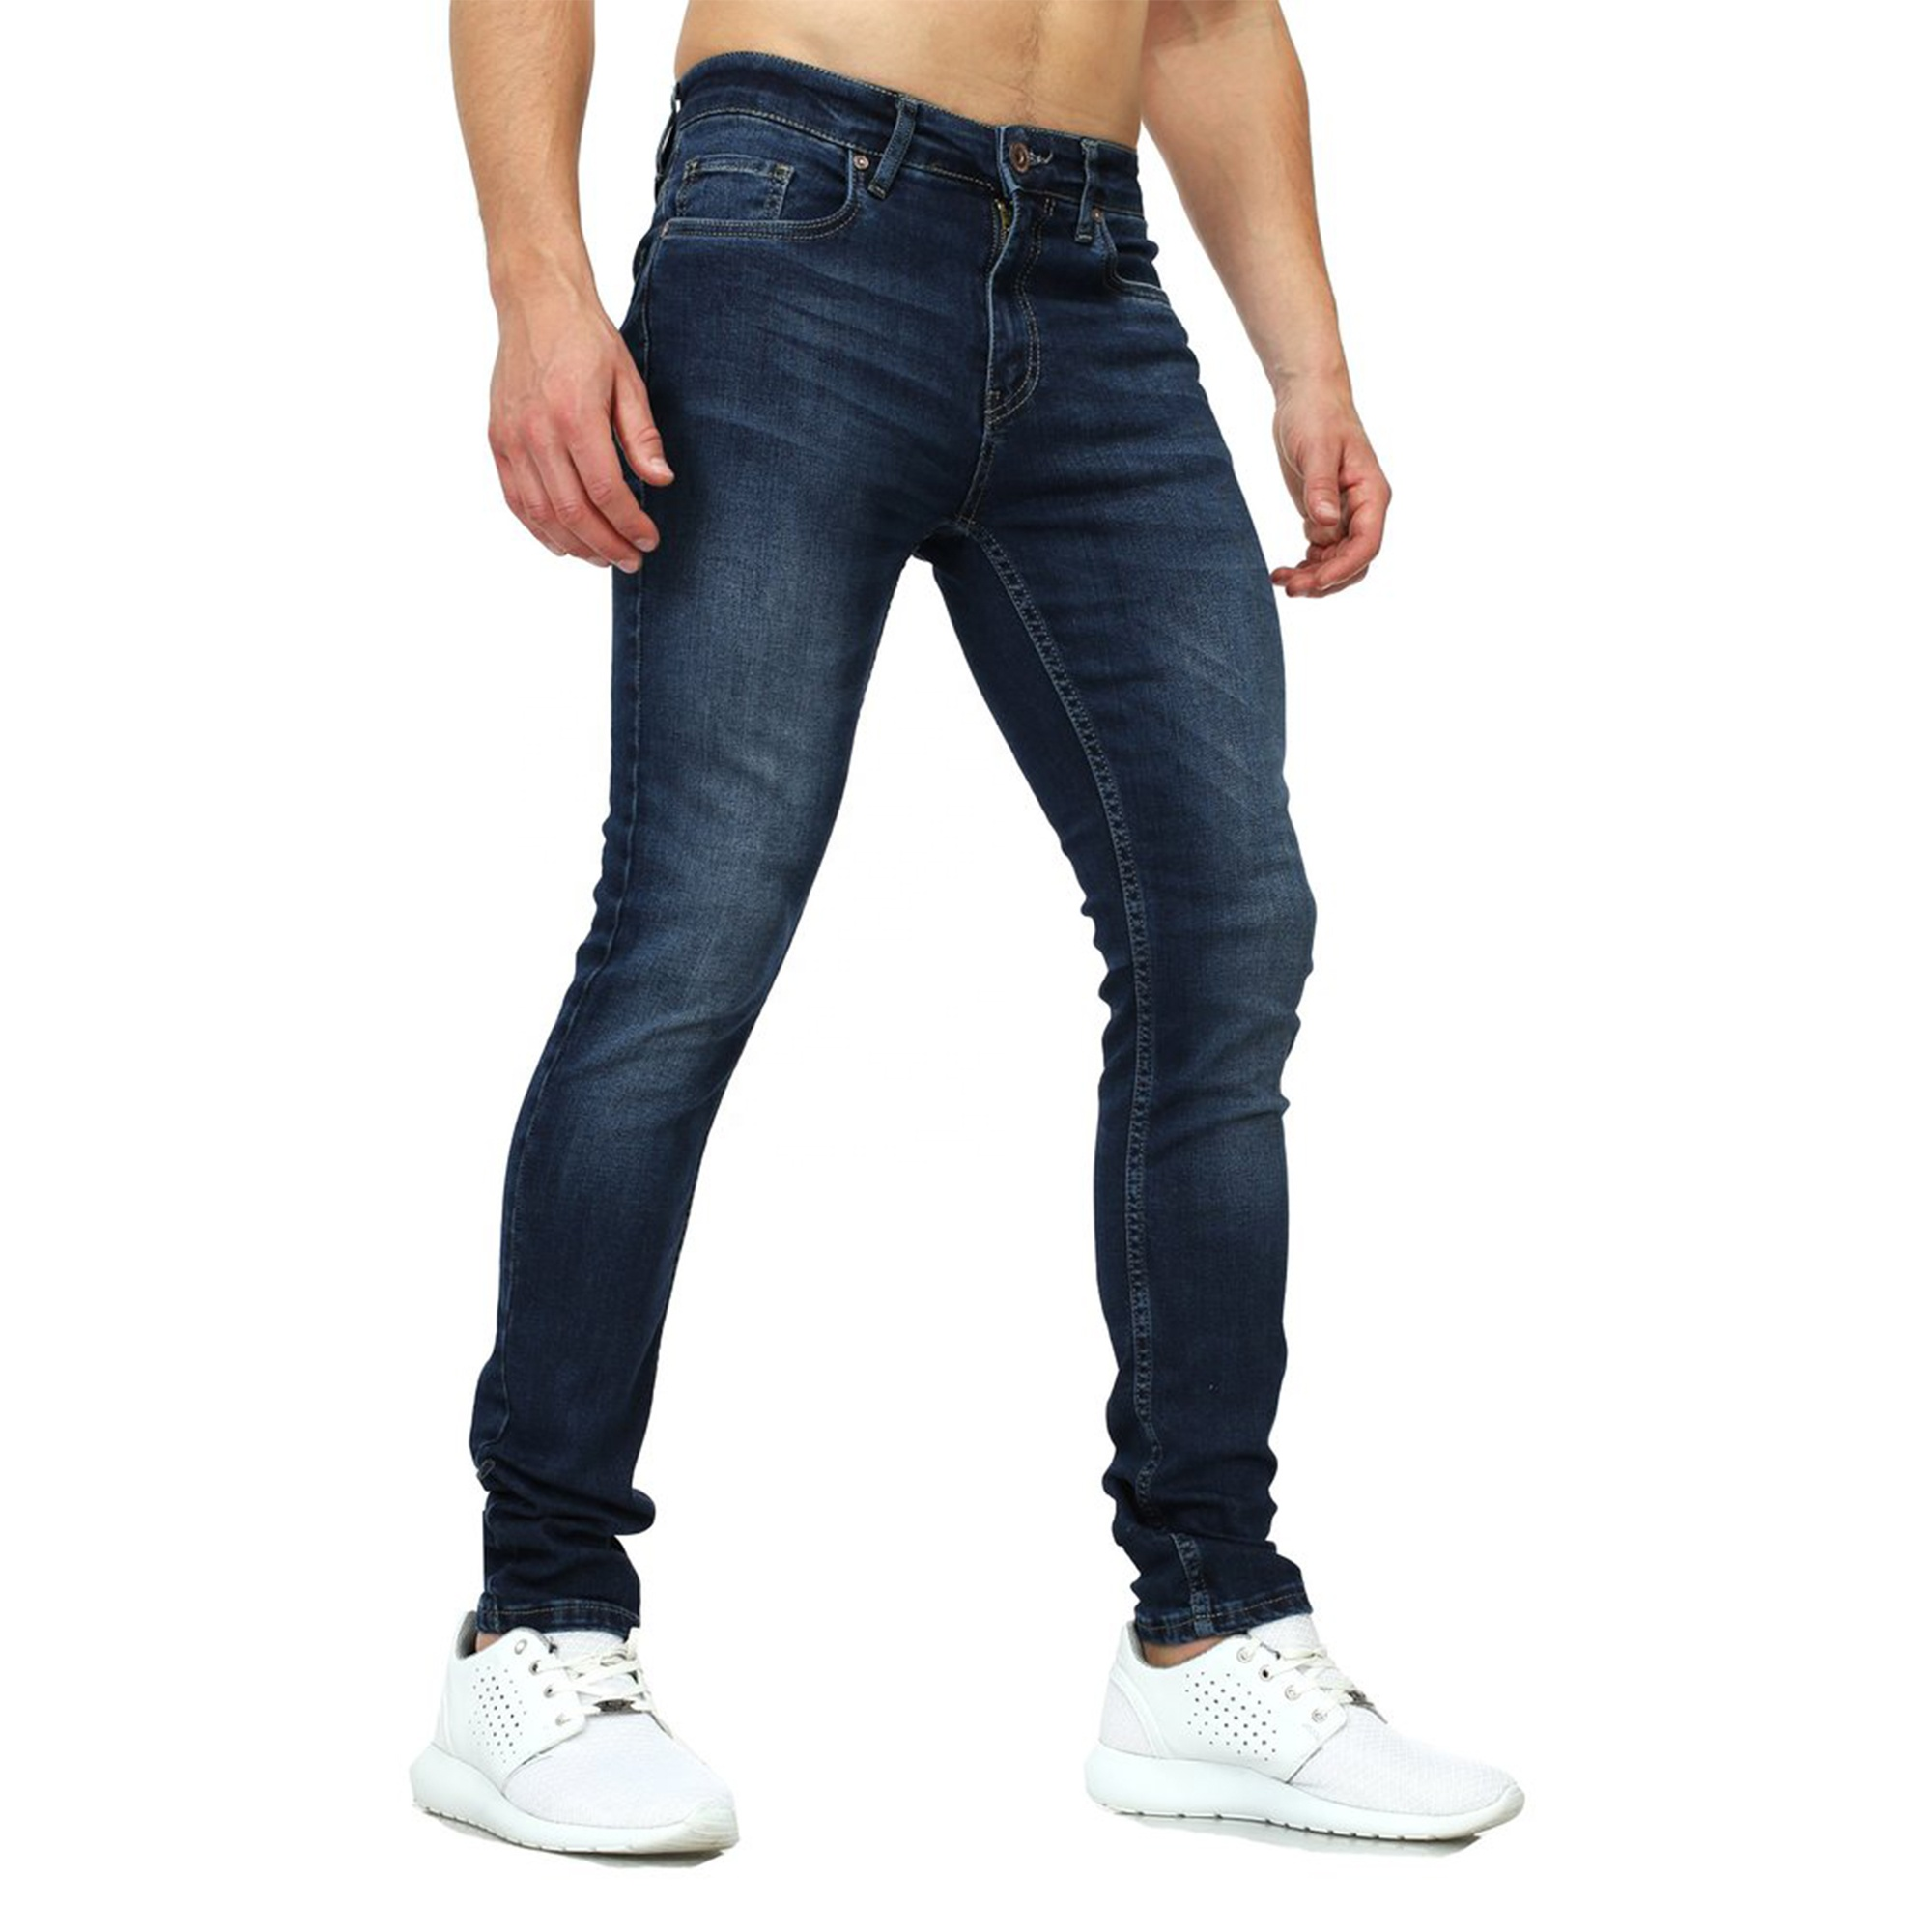 The Best Stretch Jeans for Men: That are Comfortable and Stylish